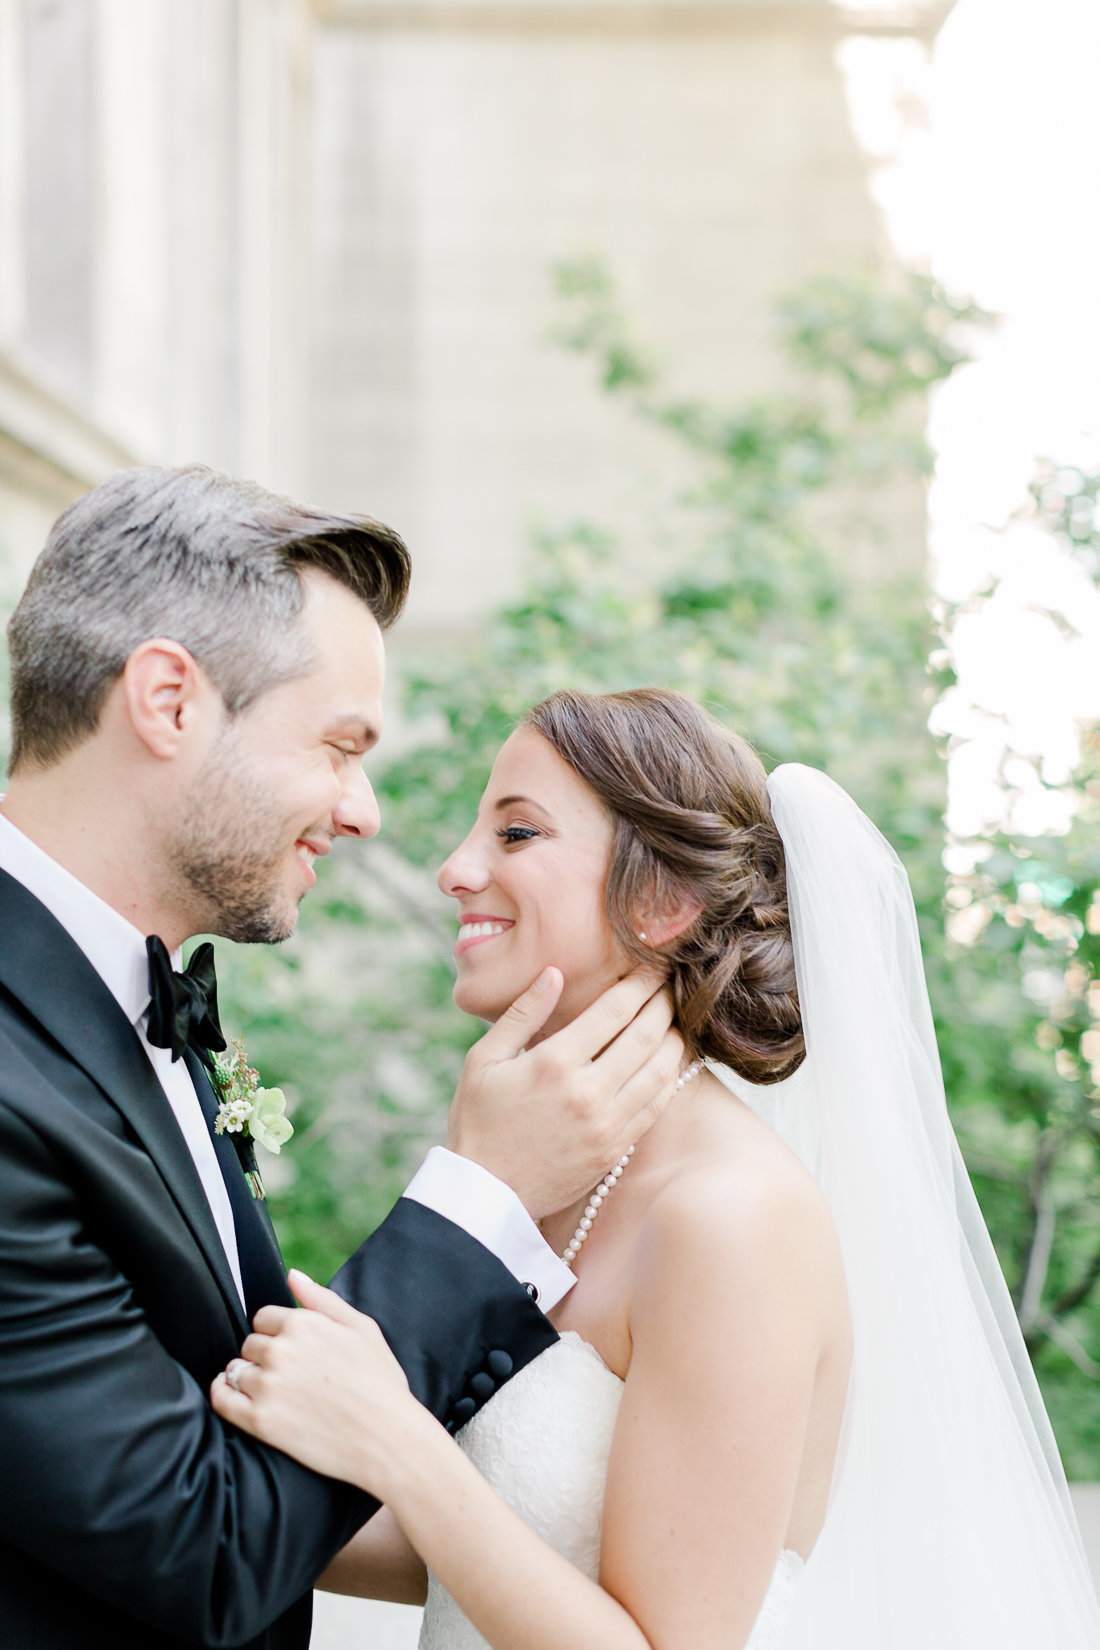 photographe-mariage-auberge-saint-gabriel-lisa-renault-photographie-montreal-wedding-photographer-48